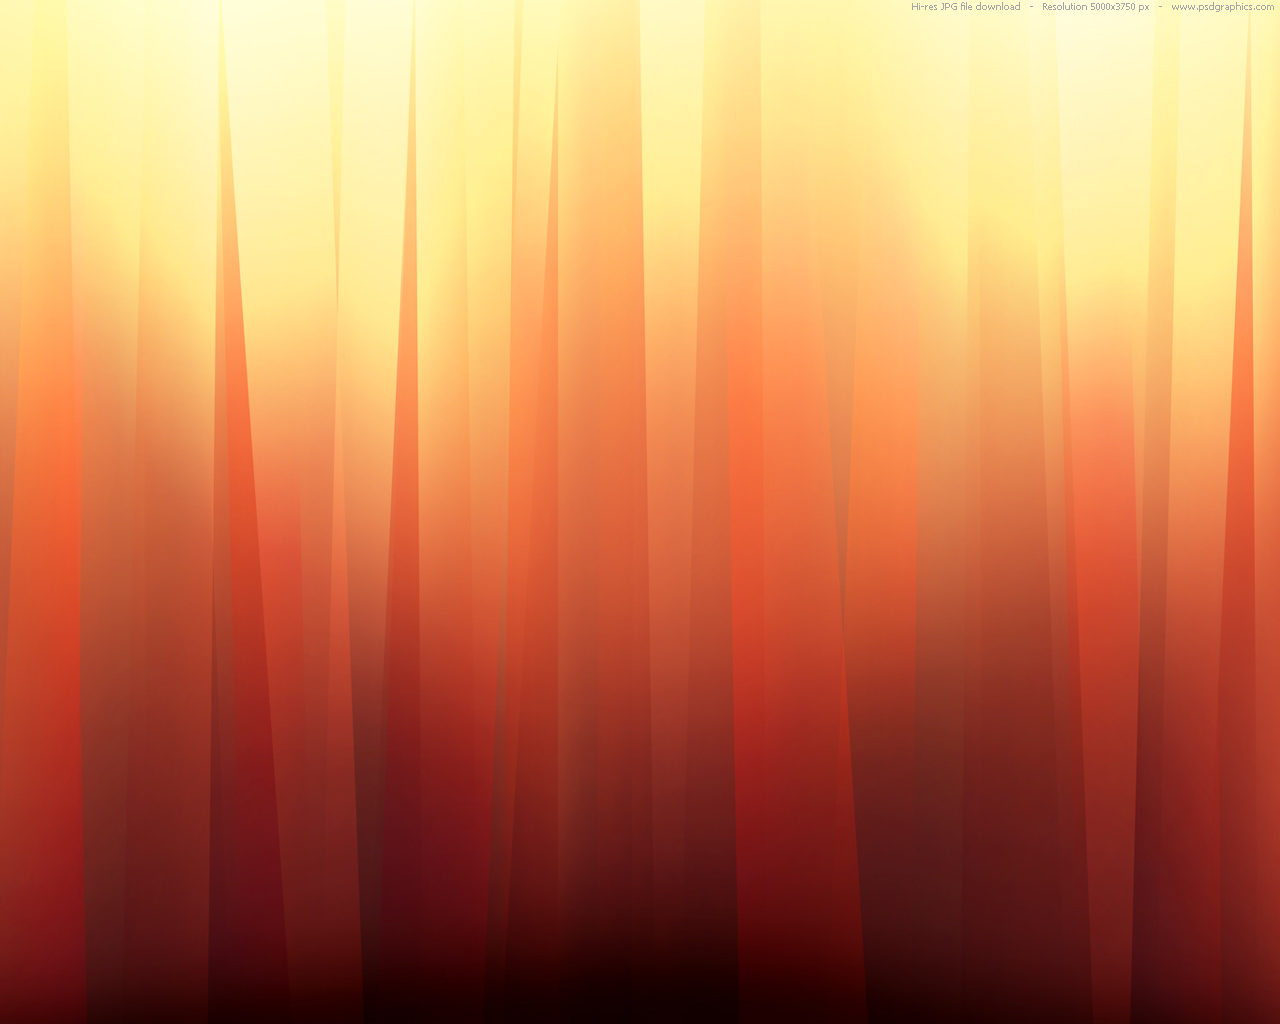 Large preview 1280x1024px abstract firewall background